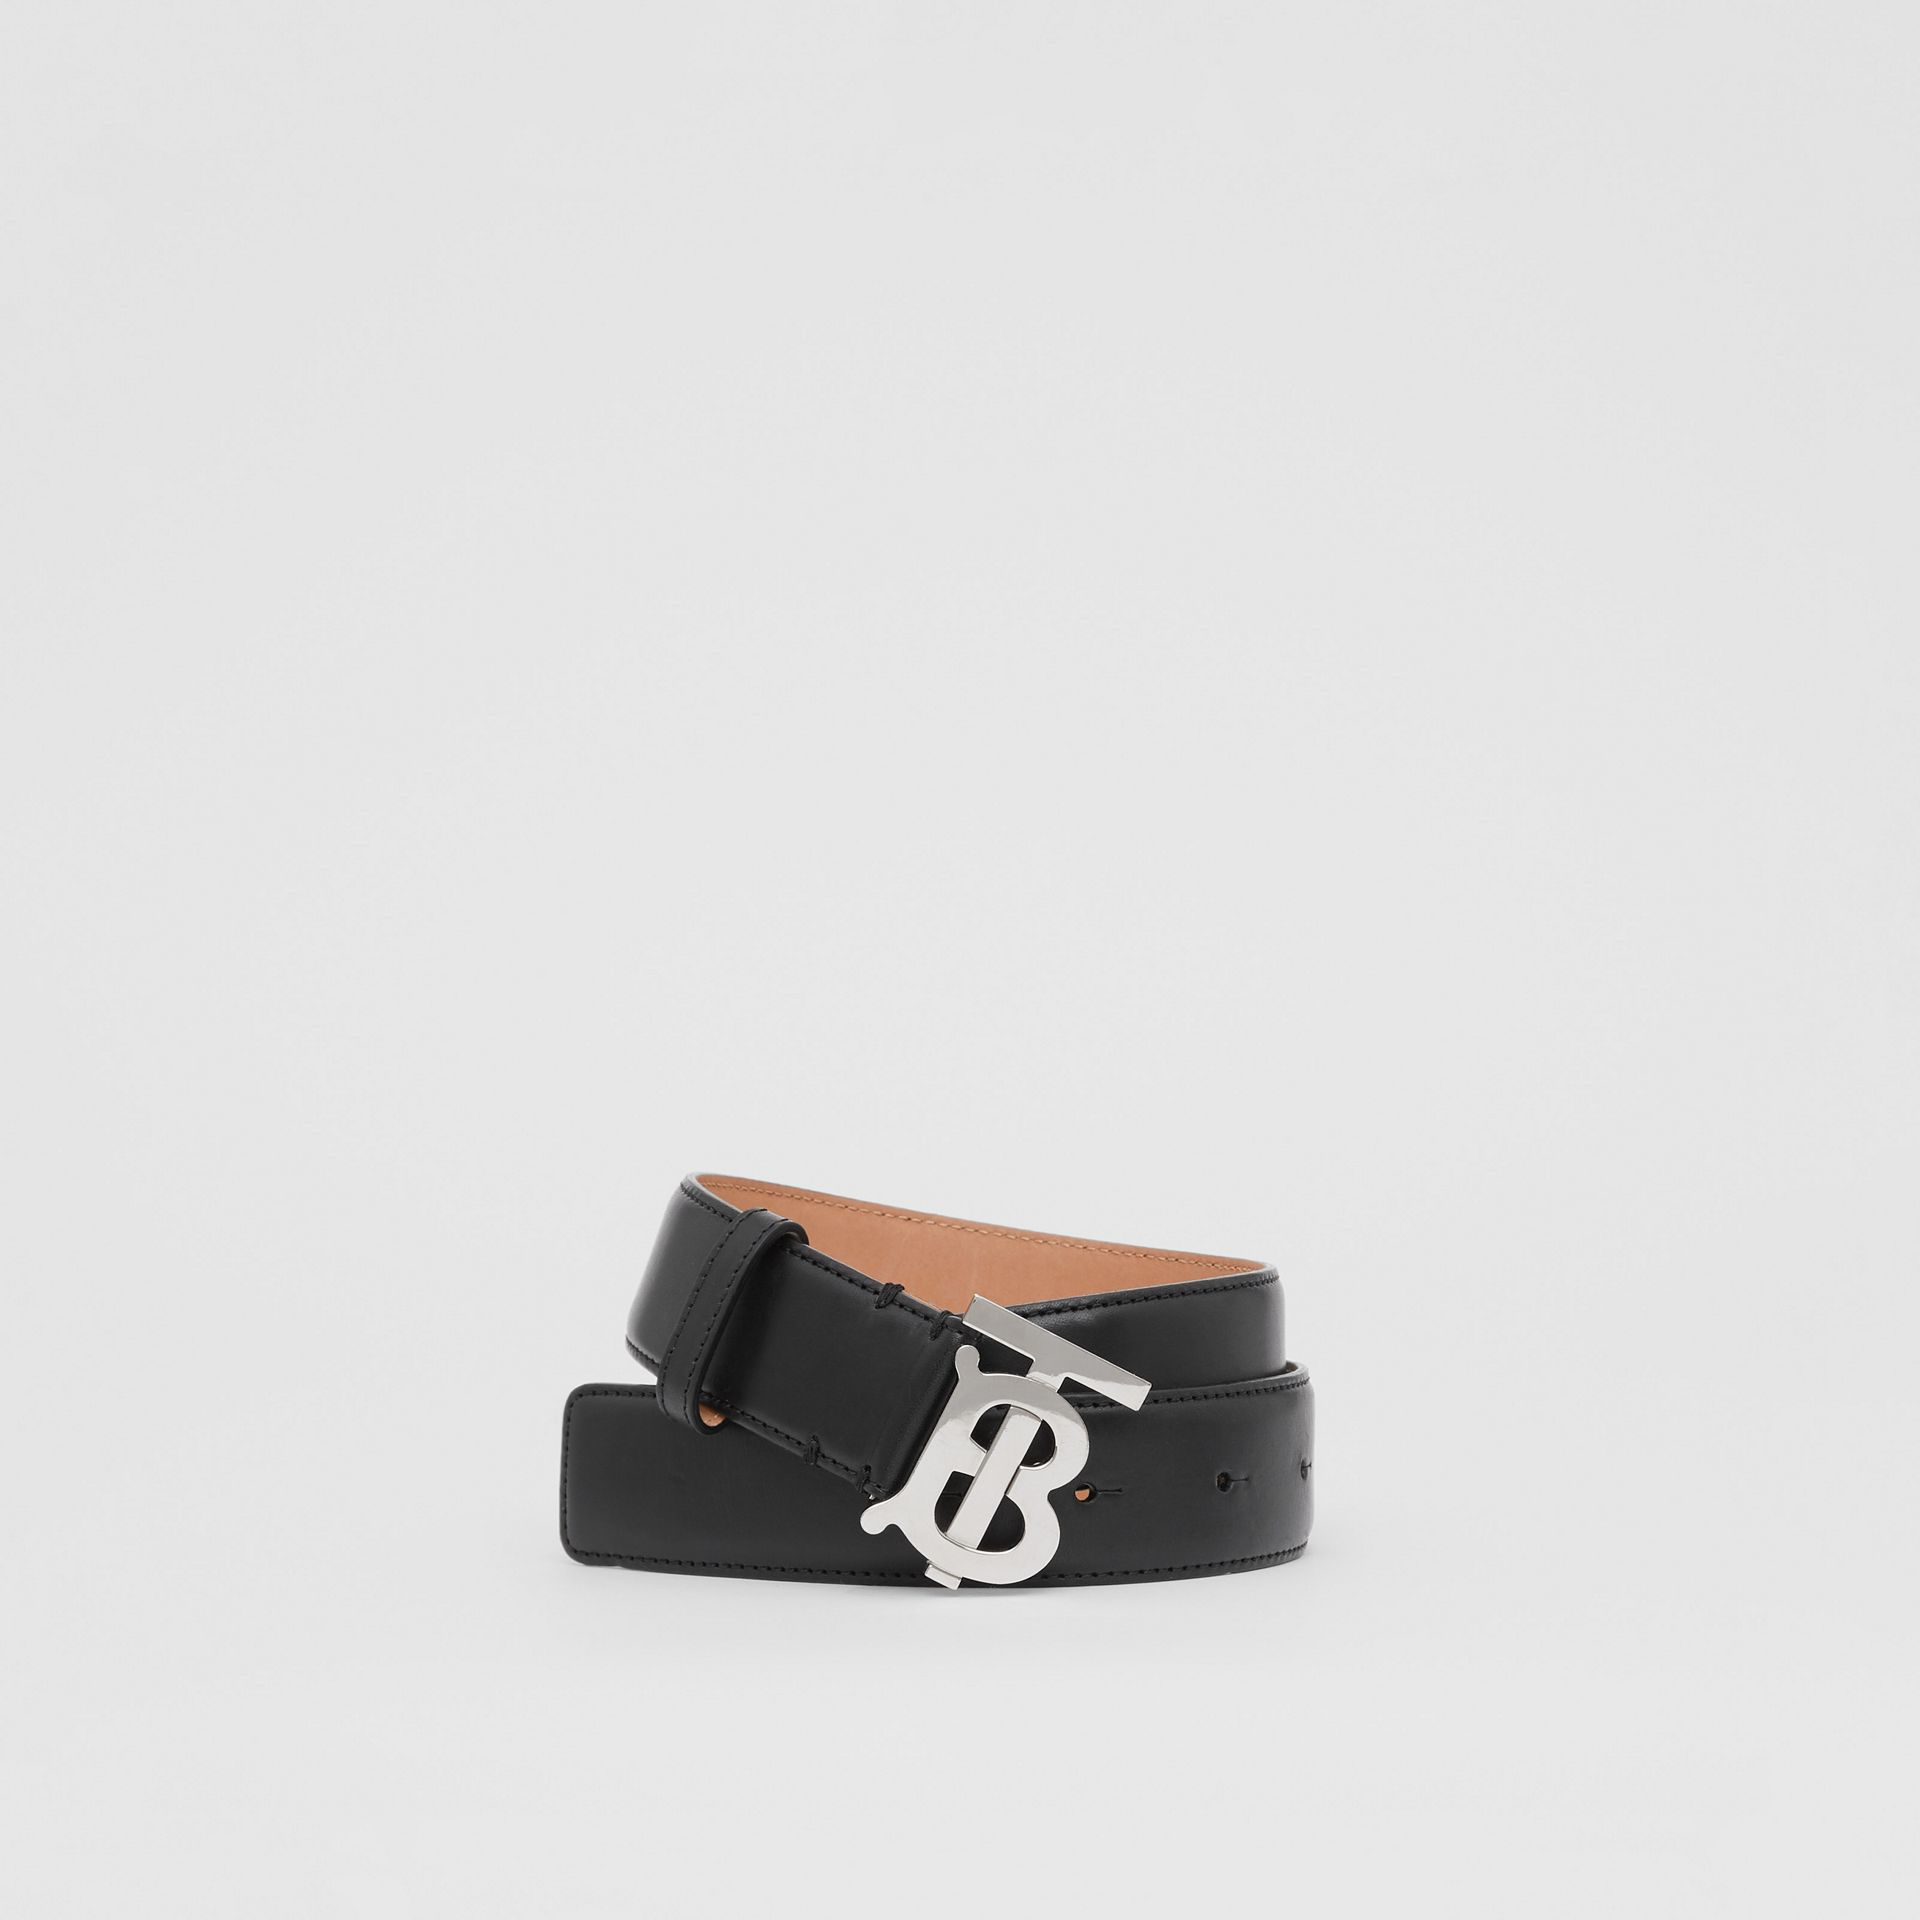 Monogram Motif Leather Belt in Black/palladio - Women | Burberry - gallery image 0